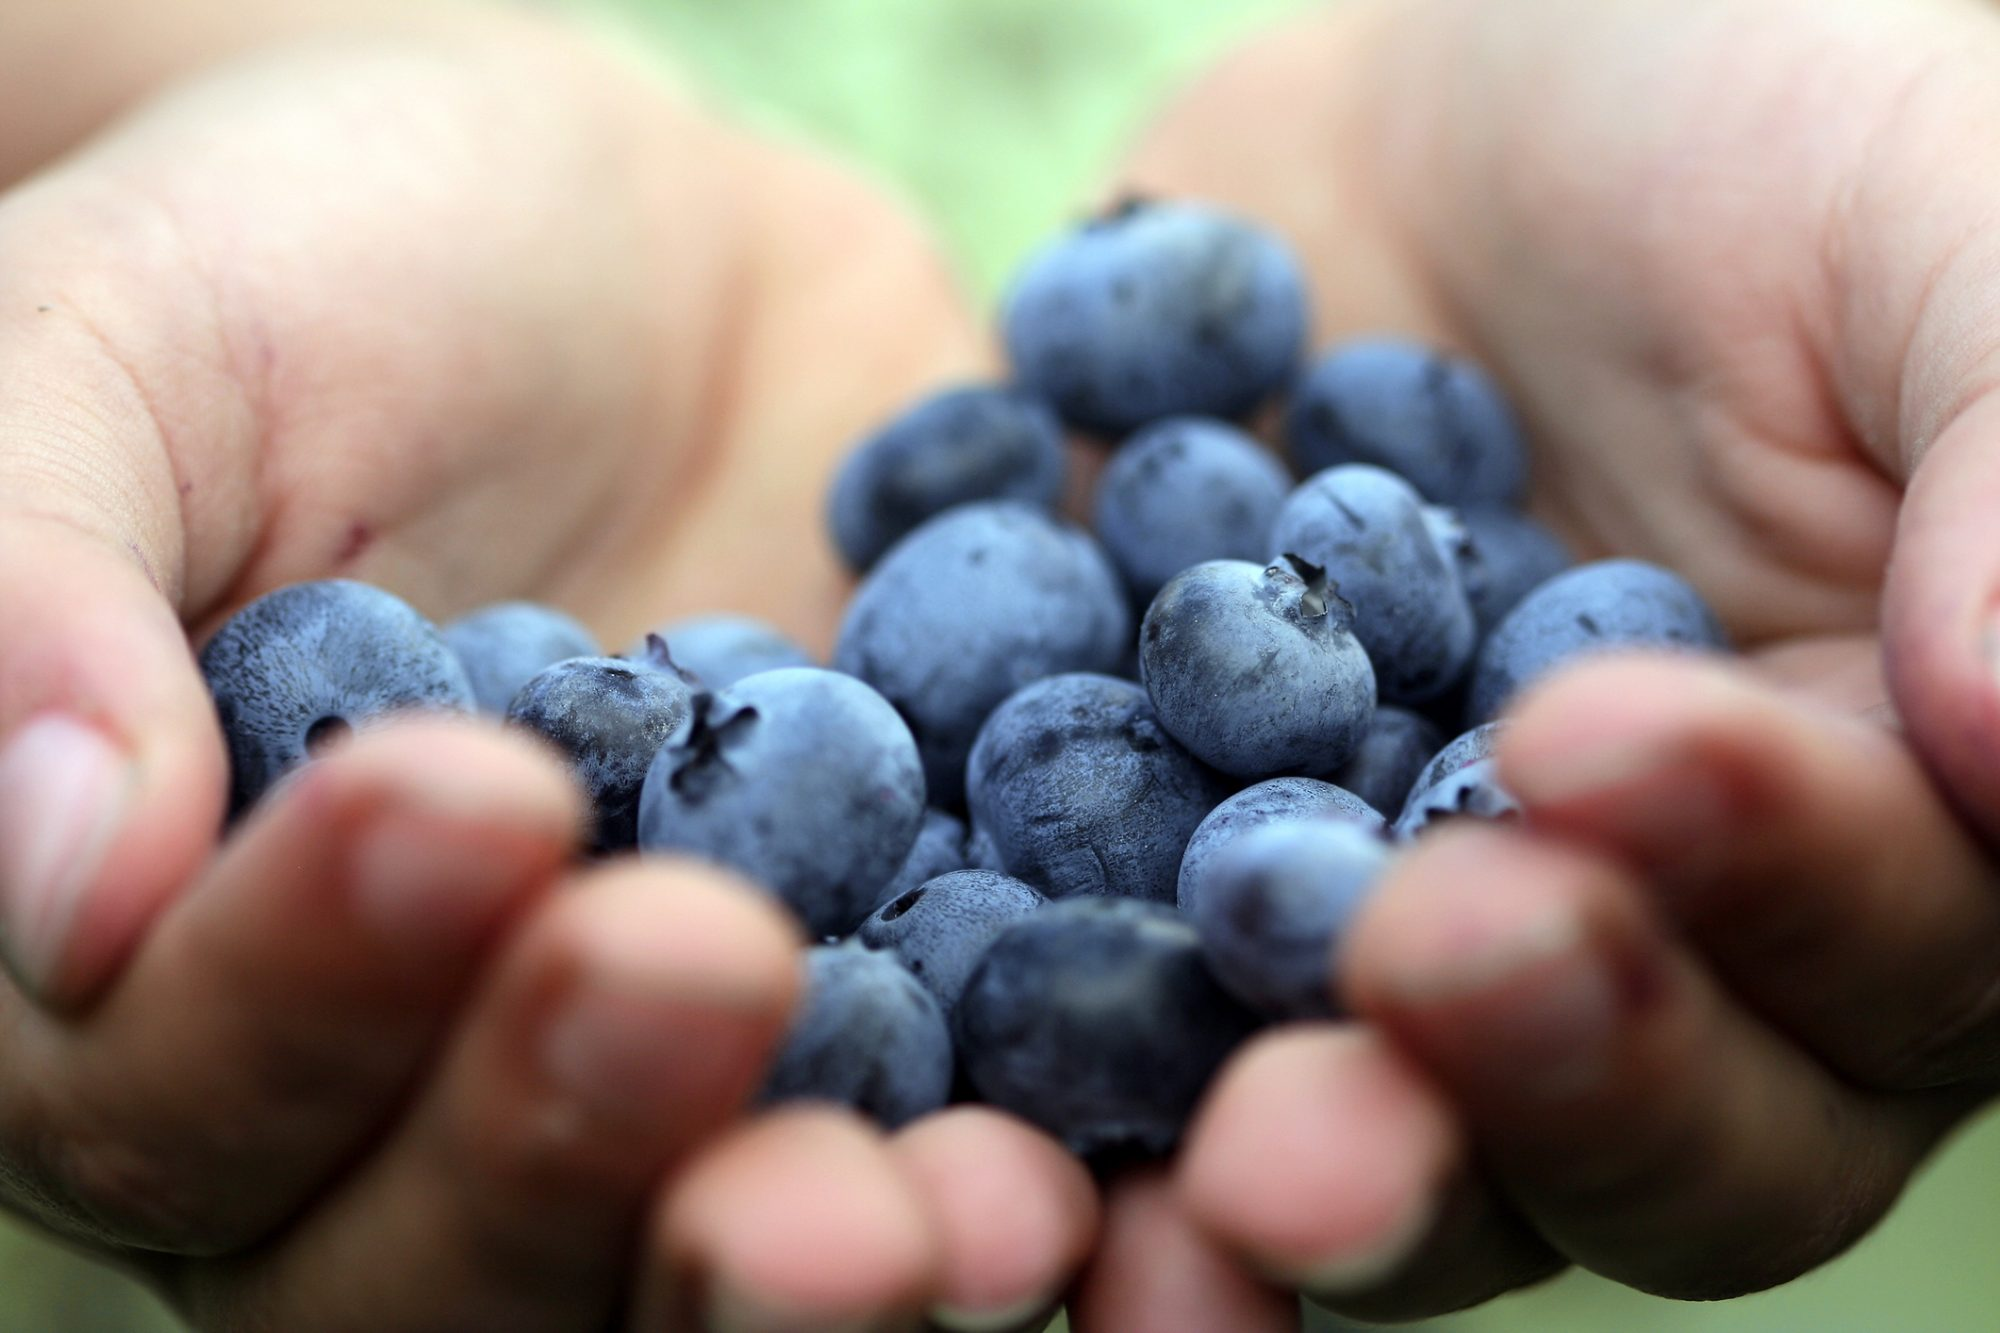 detail of hands holding blueberries